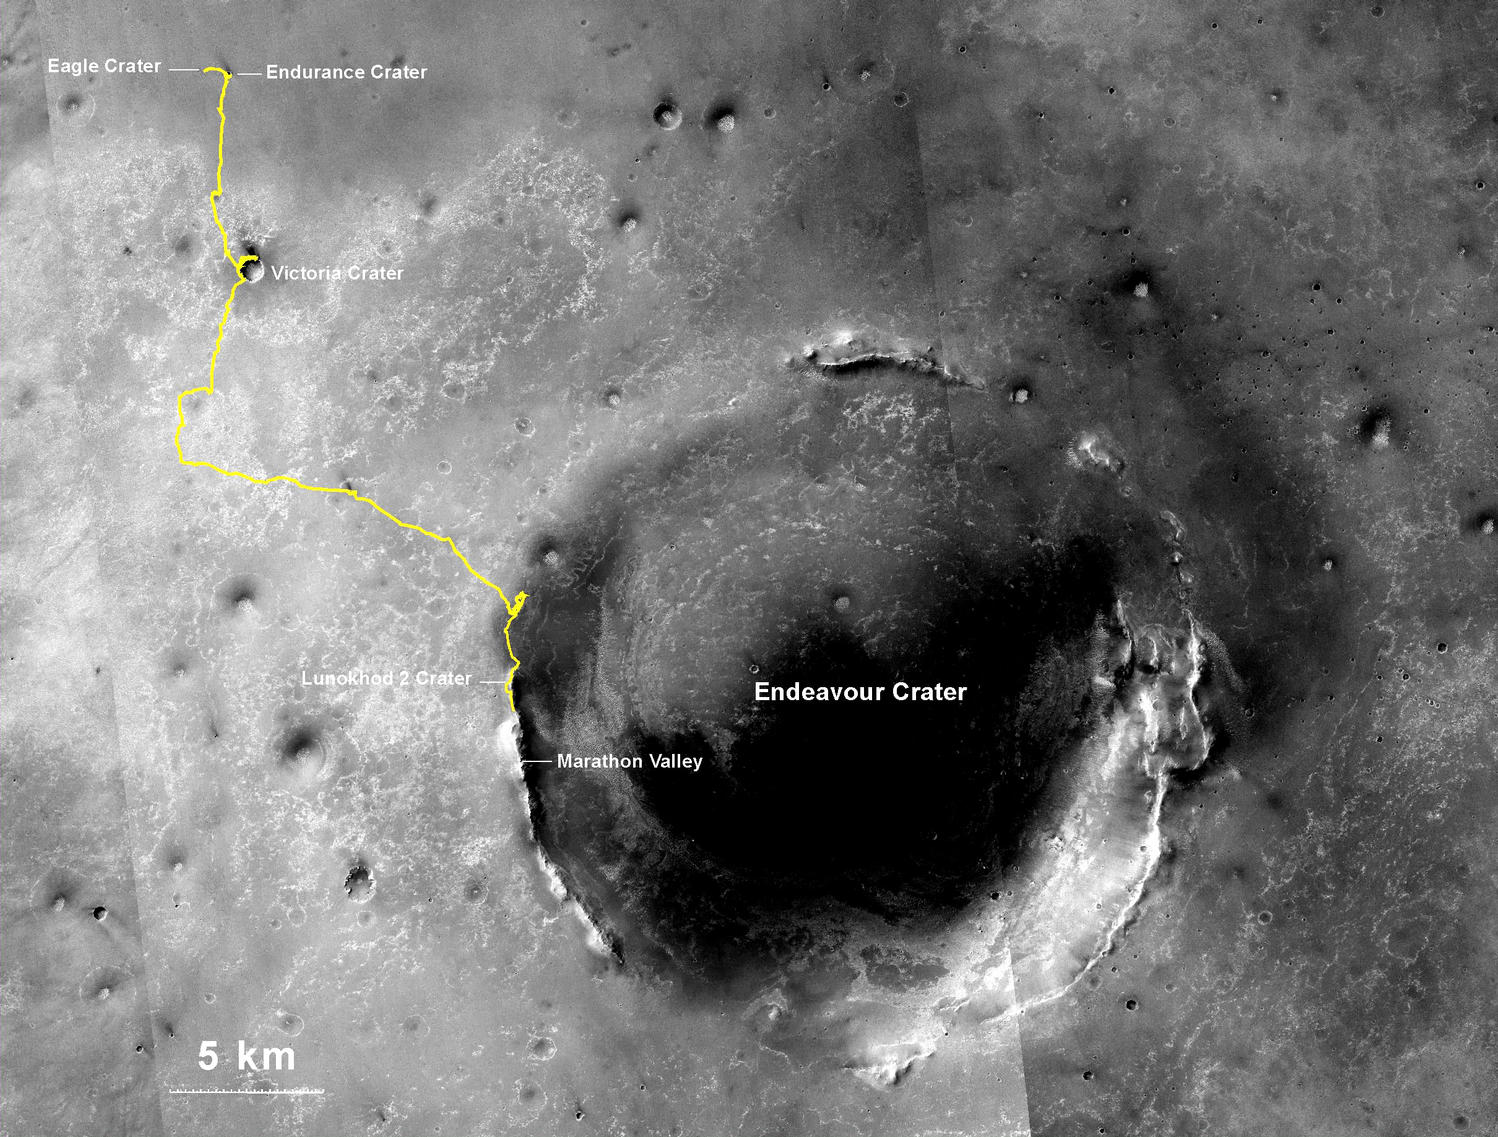 NASA's Mars Exploration Rover Opportunity, working on Mars since January 2004, passed 25 miles of total driving on the July 27, 2014. The gold line on this map shows Opportunity's route from the landing site inside Eagle Crater, in upper left, to its location after the July 27 (Sol 3735) drive.